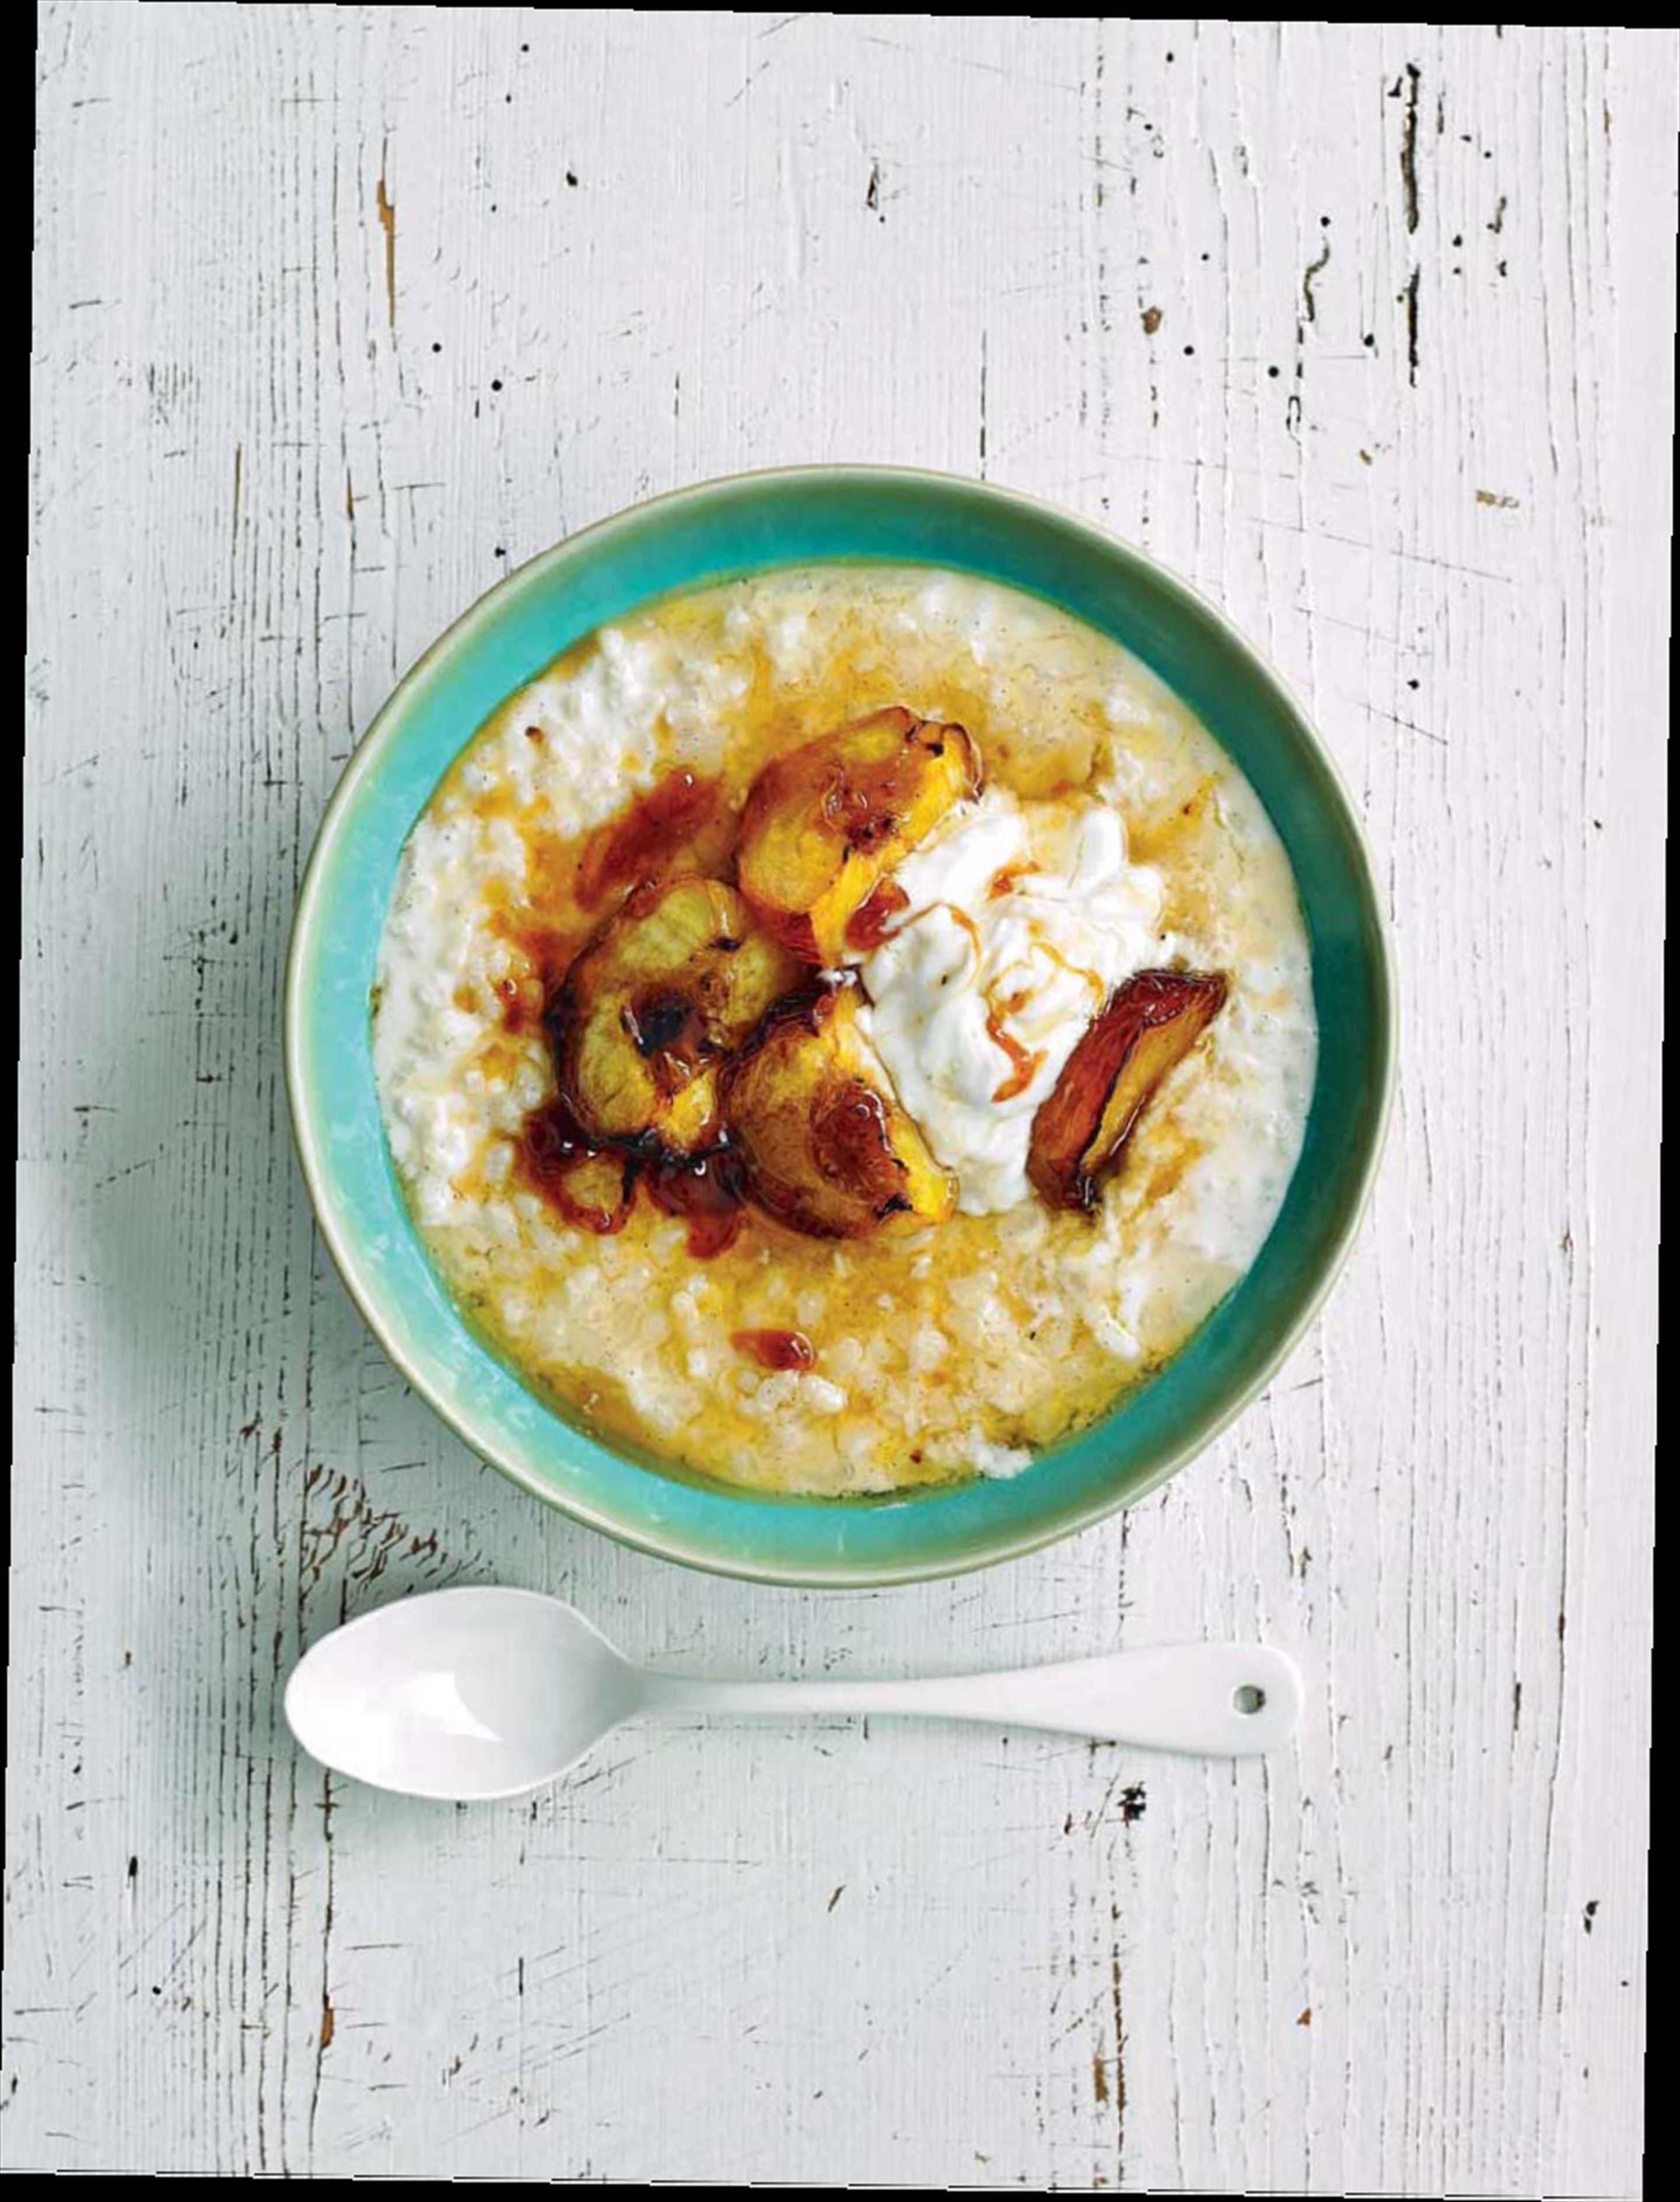 Roasted peaches with arroz con leche